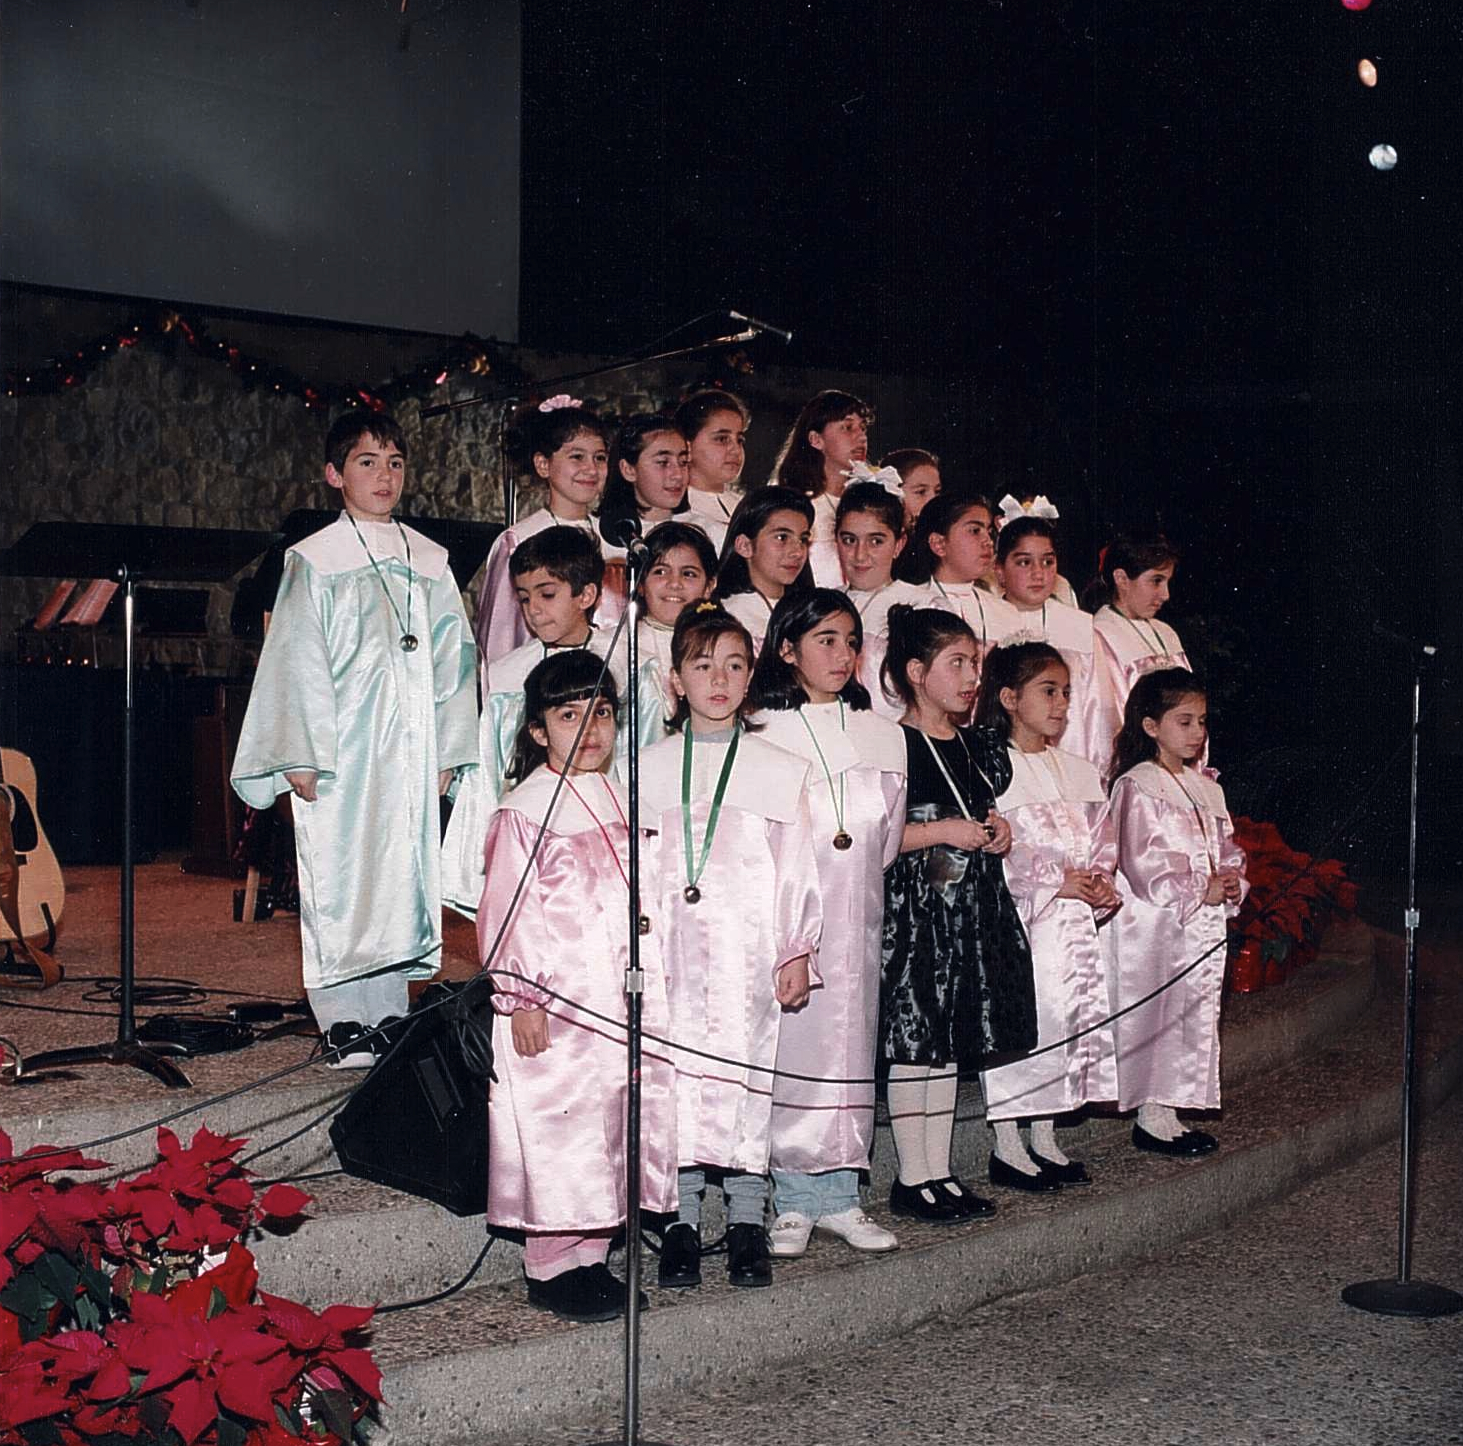 Childrens Choir In Glendale.jpg